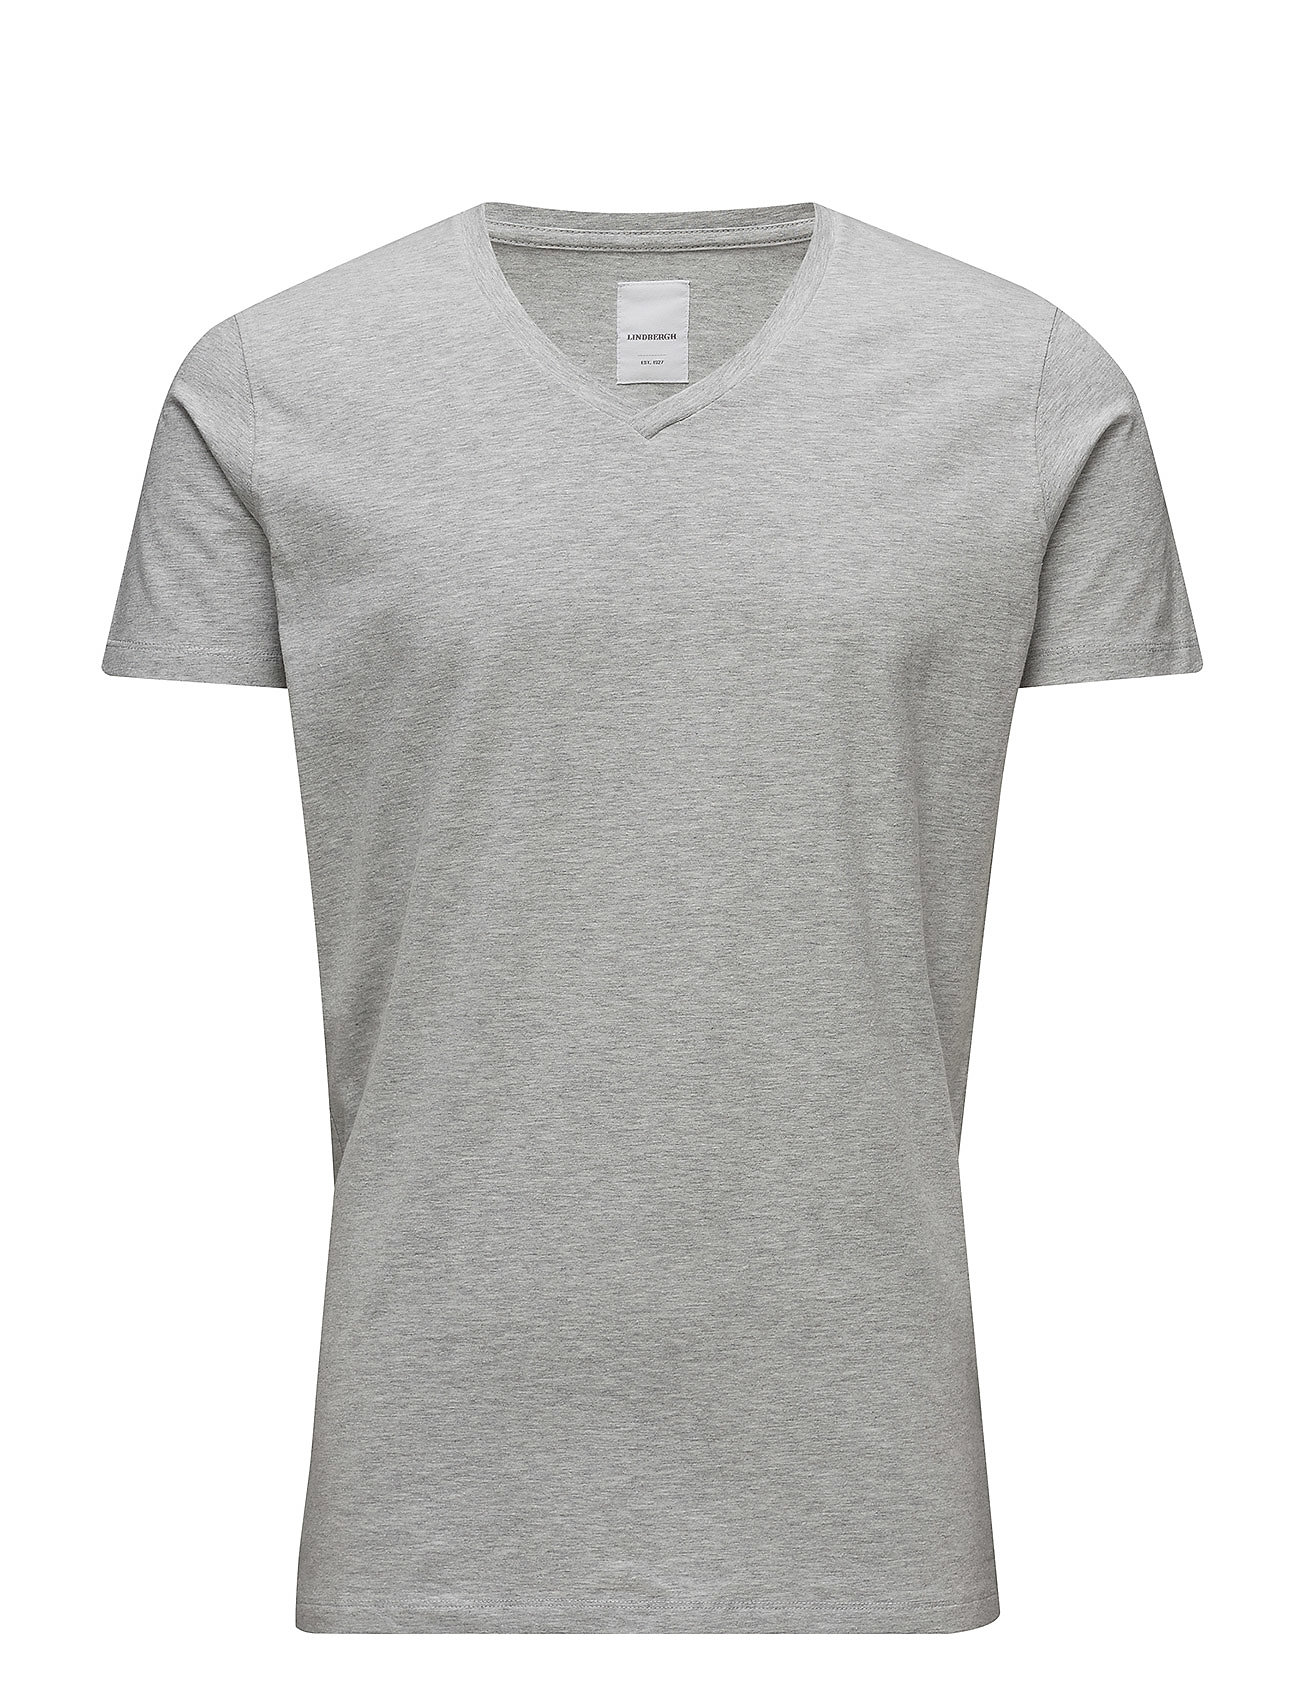 Lindbergh Mens stretch v-neck tee s/s - GREY MEL